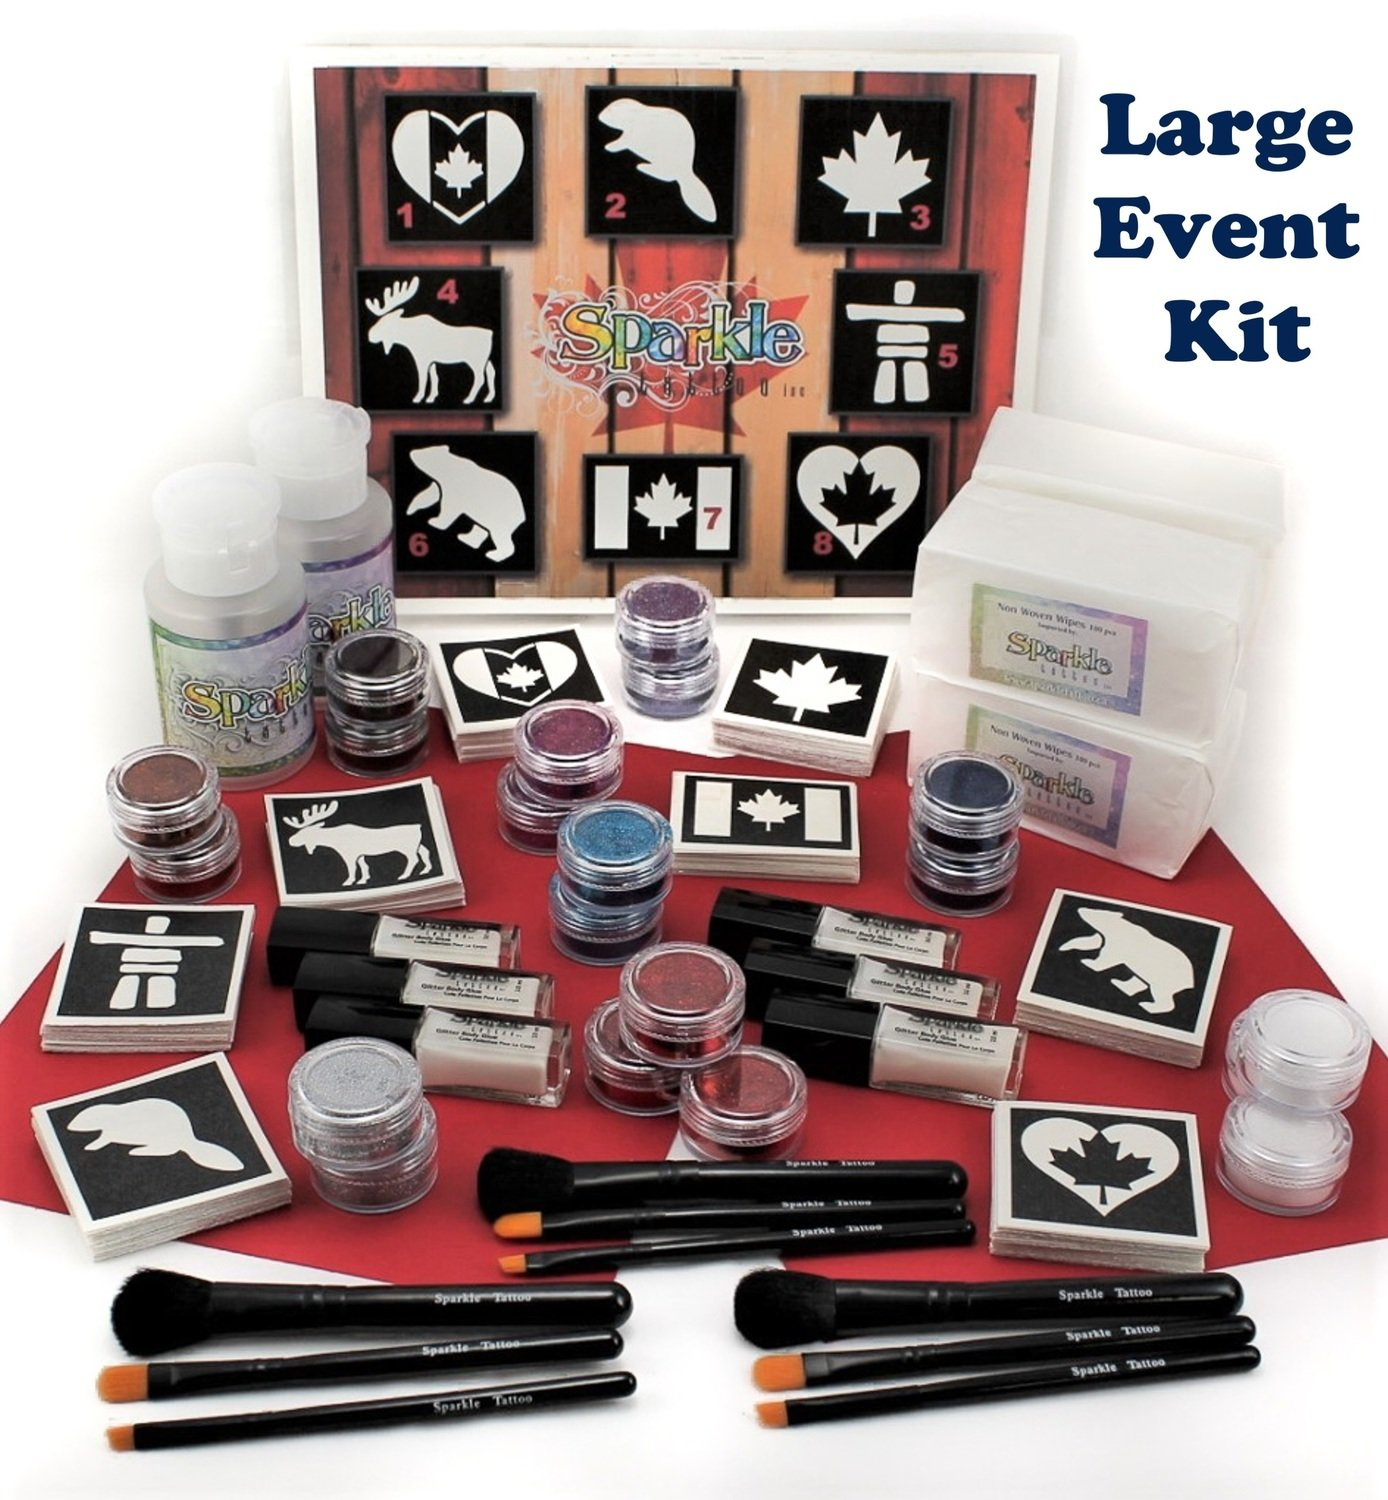 Canada Day Event Kit - Large